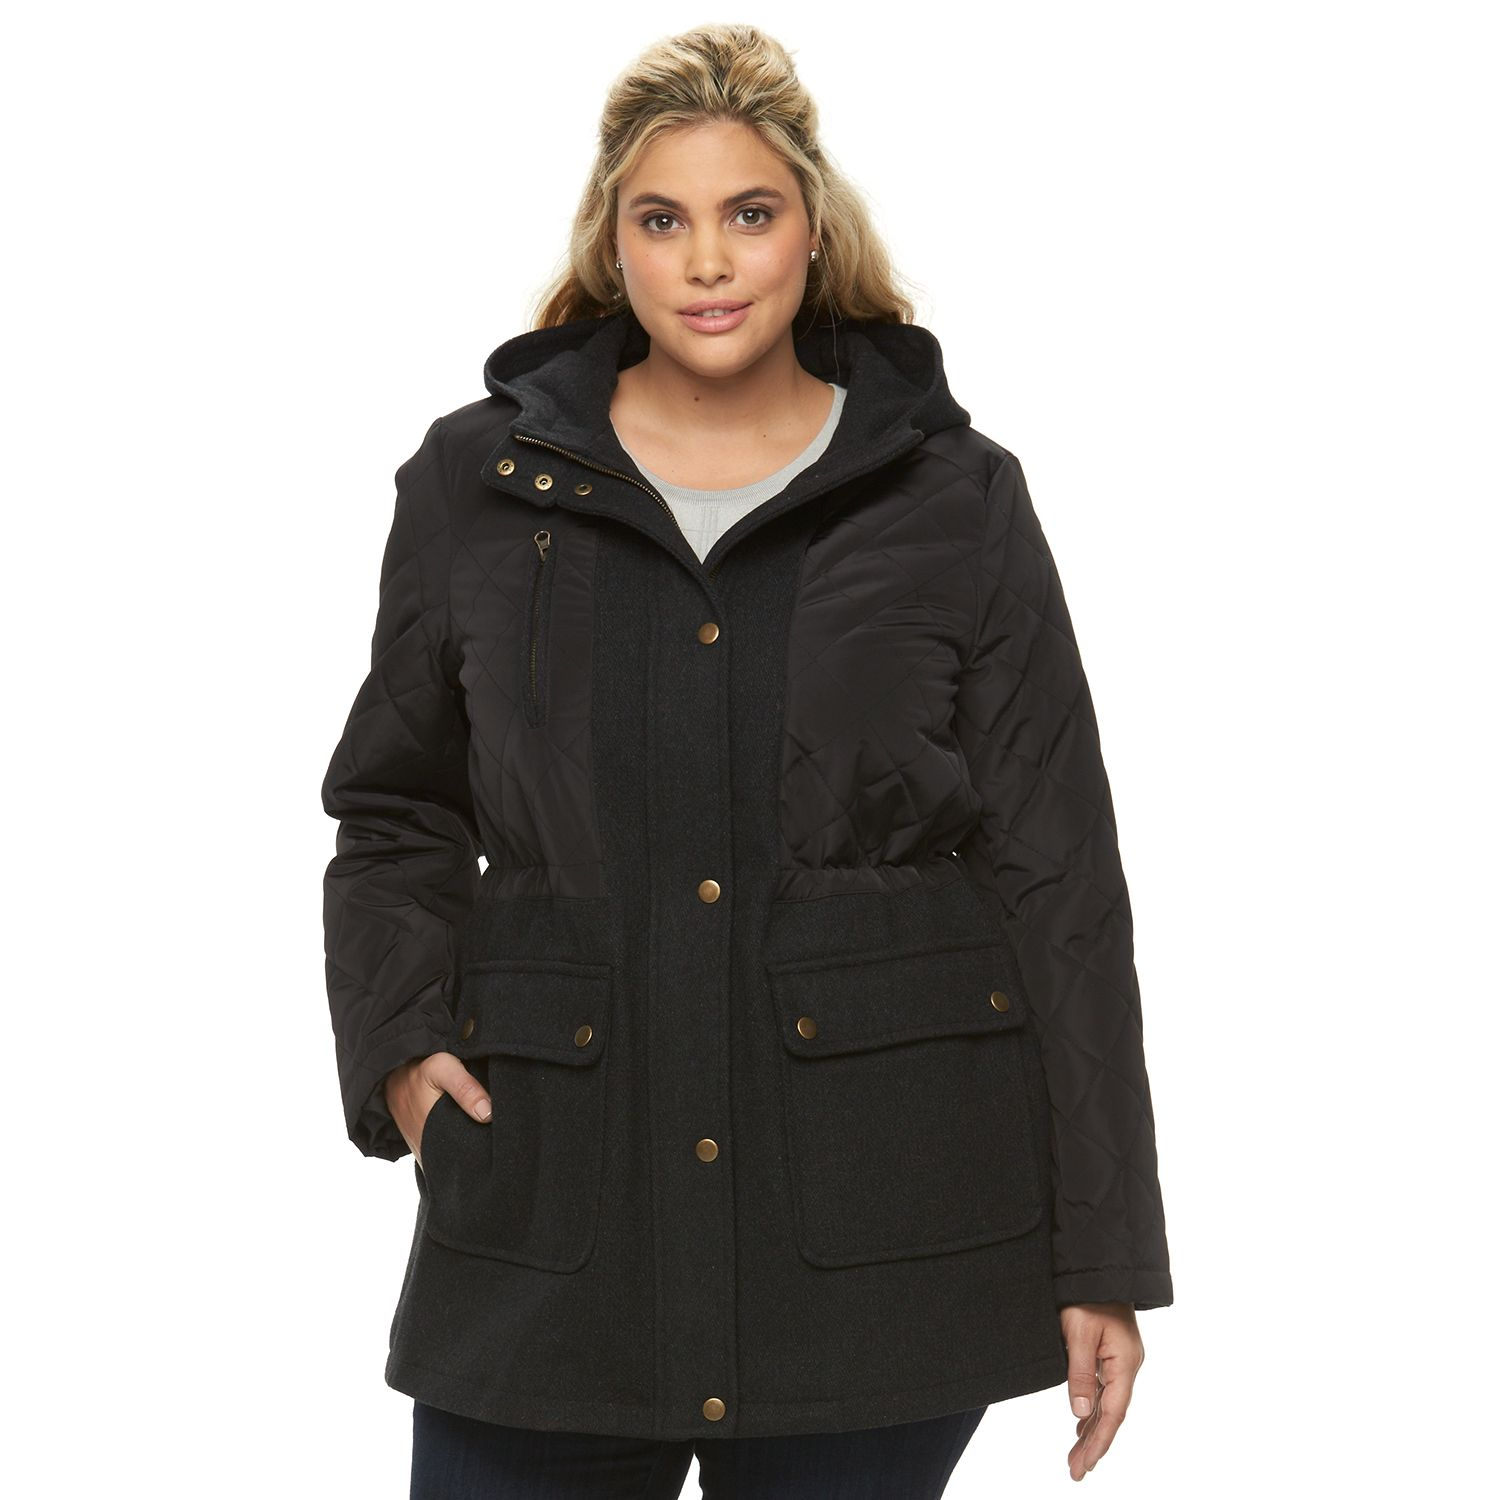 Plus Size Apt. 9? Hooded Quilted Wool Blend Anorak Jacket